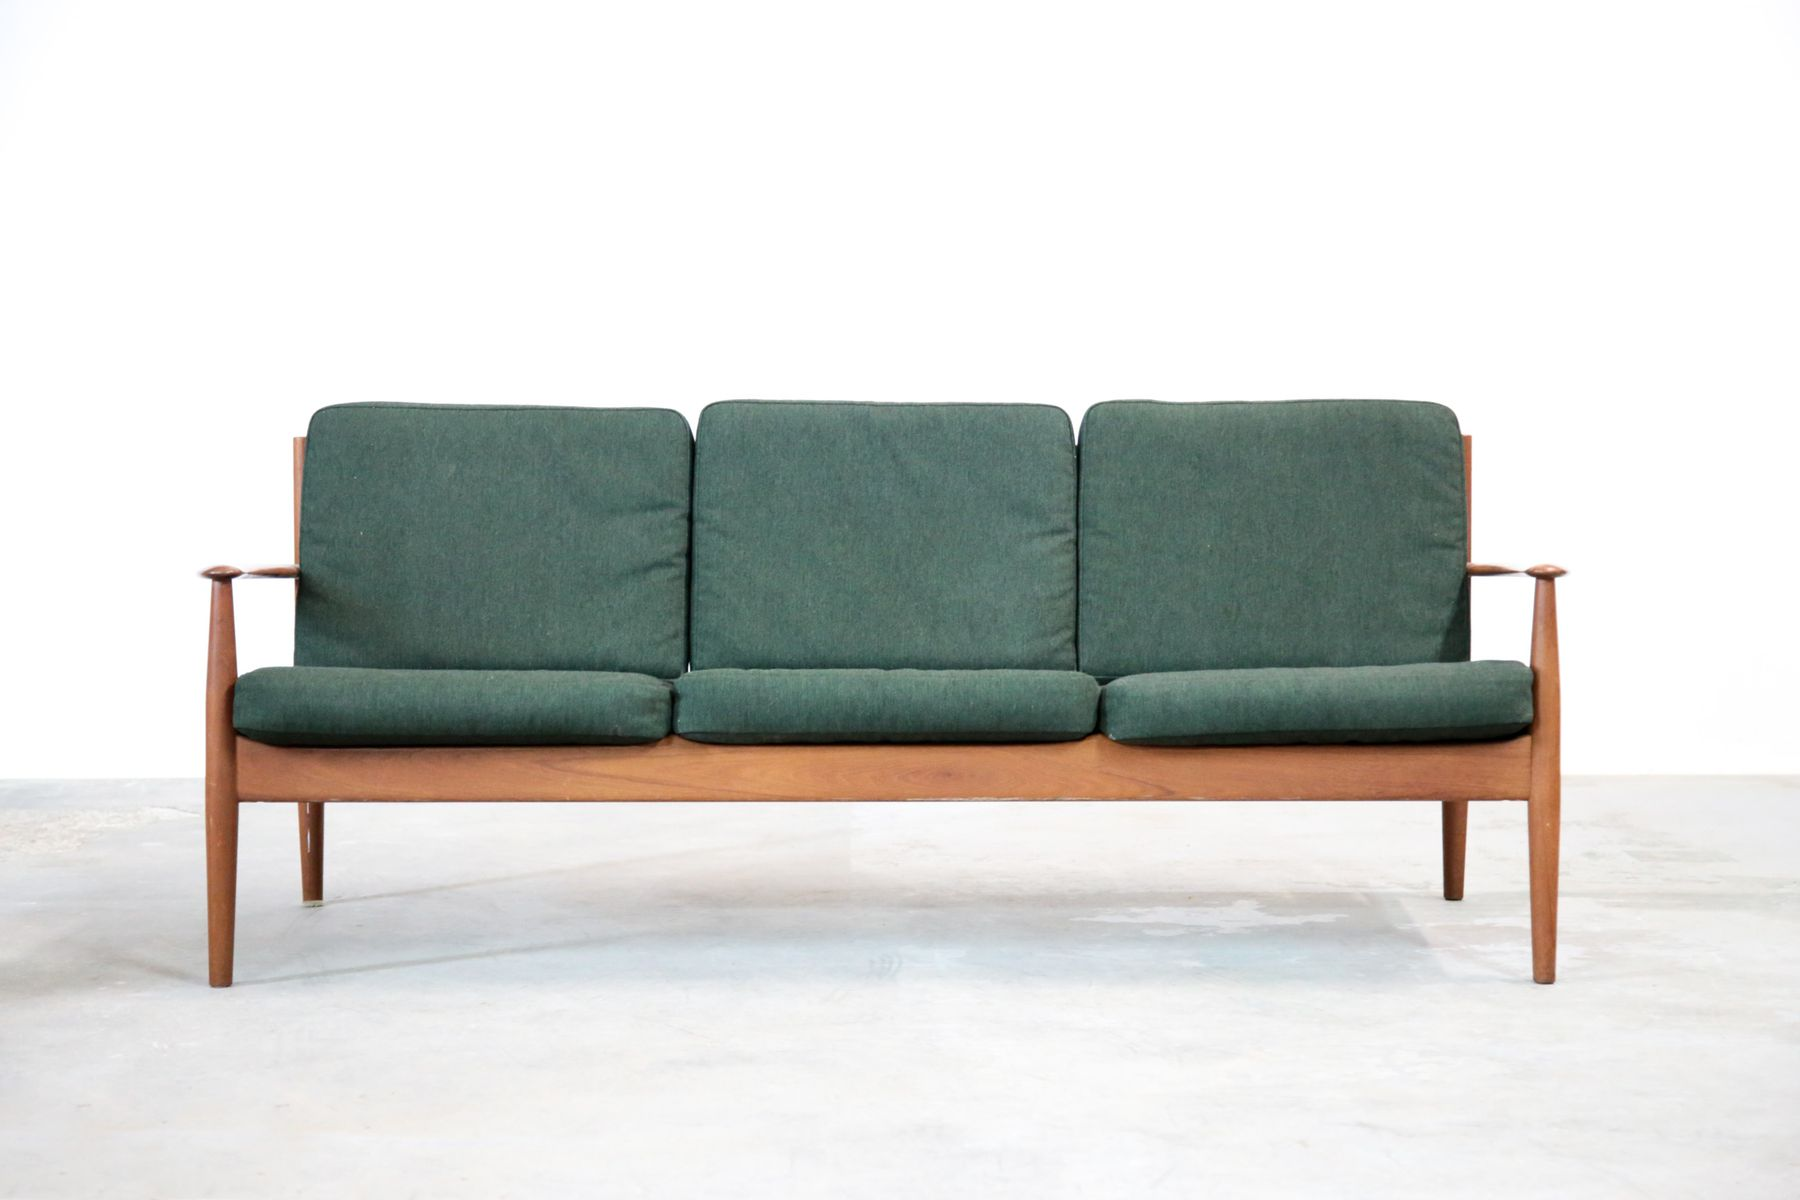 gr nes teak sofa von grete jalk f r france s n bei pamono kaufen. Black Bedroom Furniture Sets. Home Design Ideas